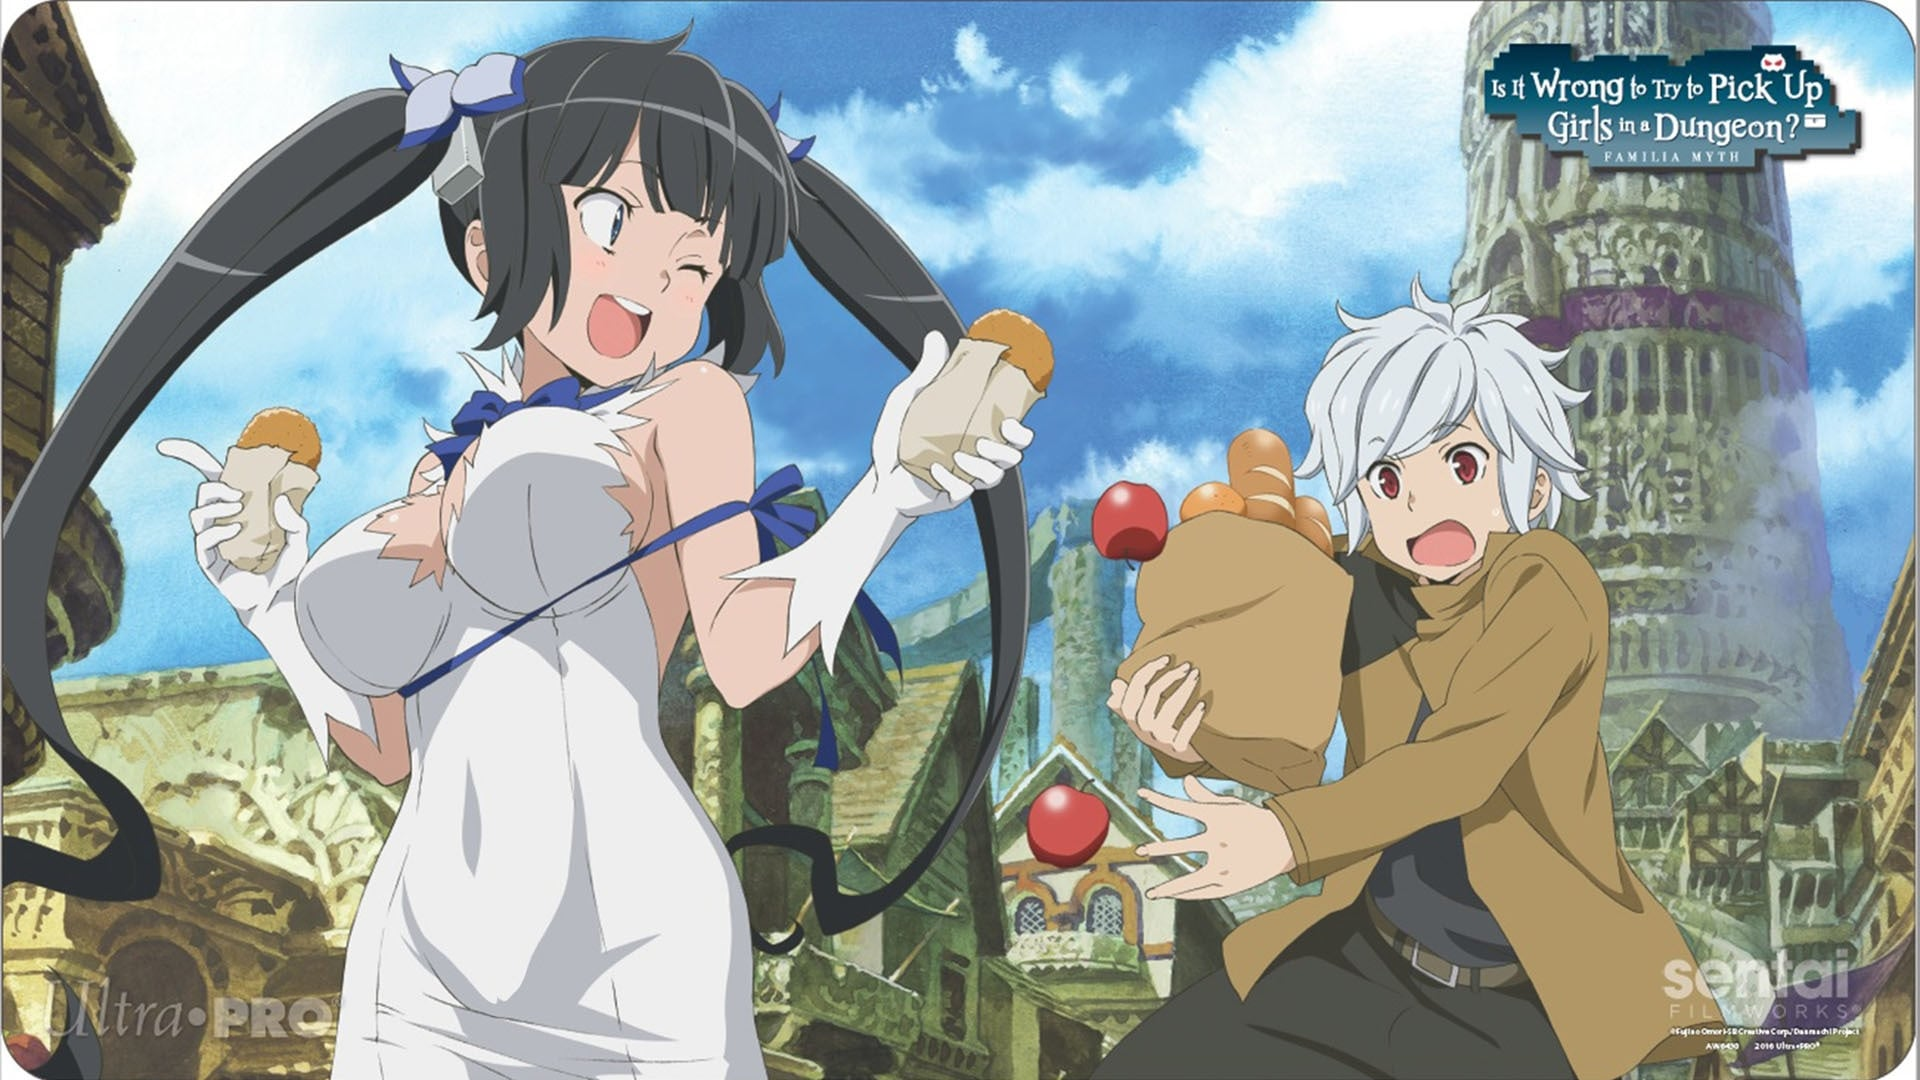 Is It Wrong to Try to Pick Up Girls in a Dungeon? - Specials